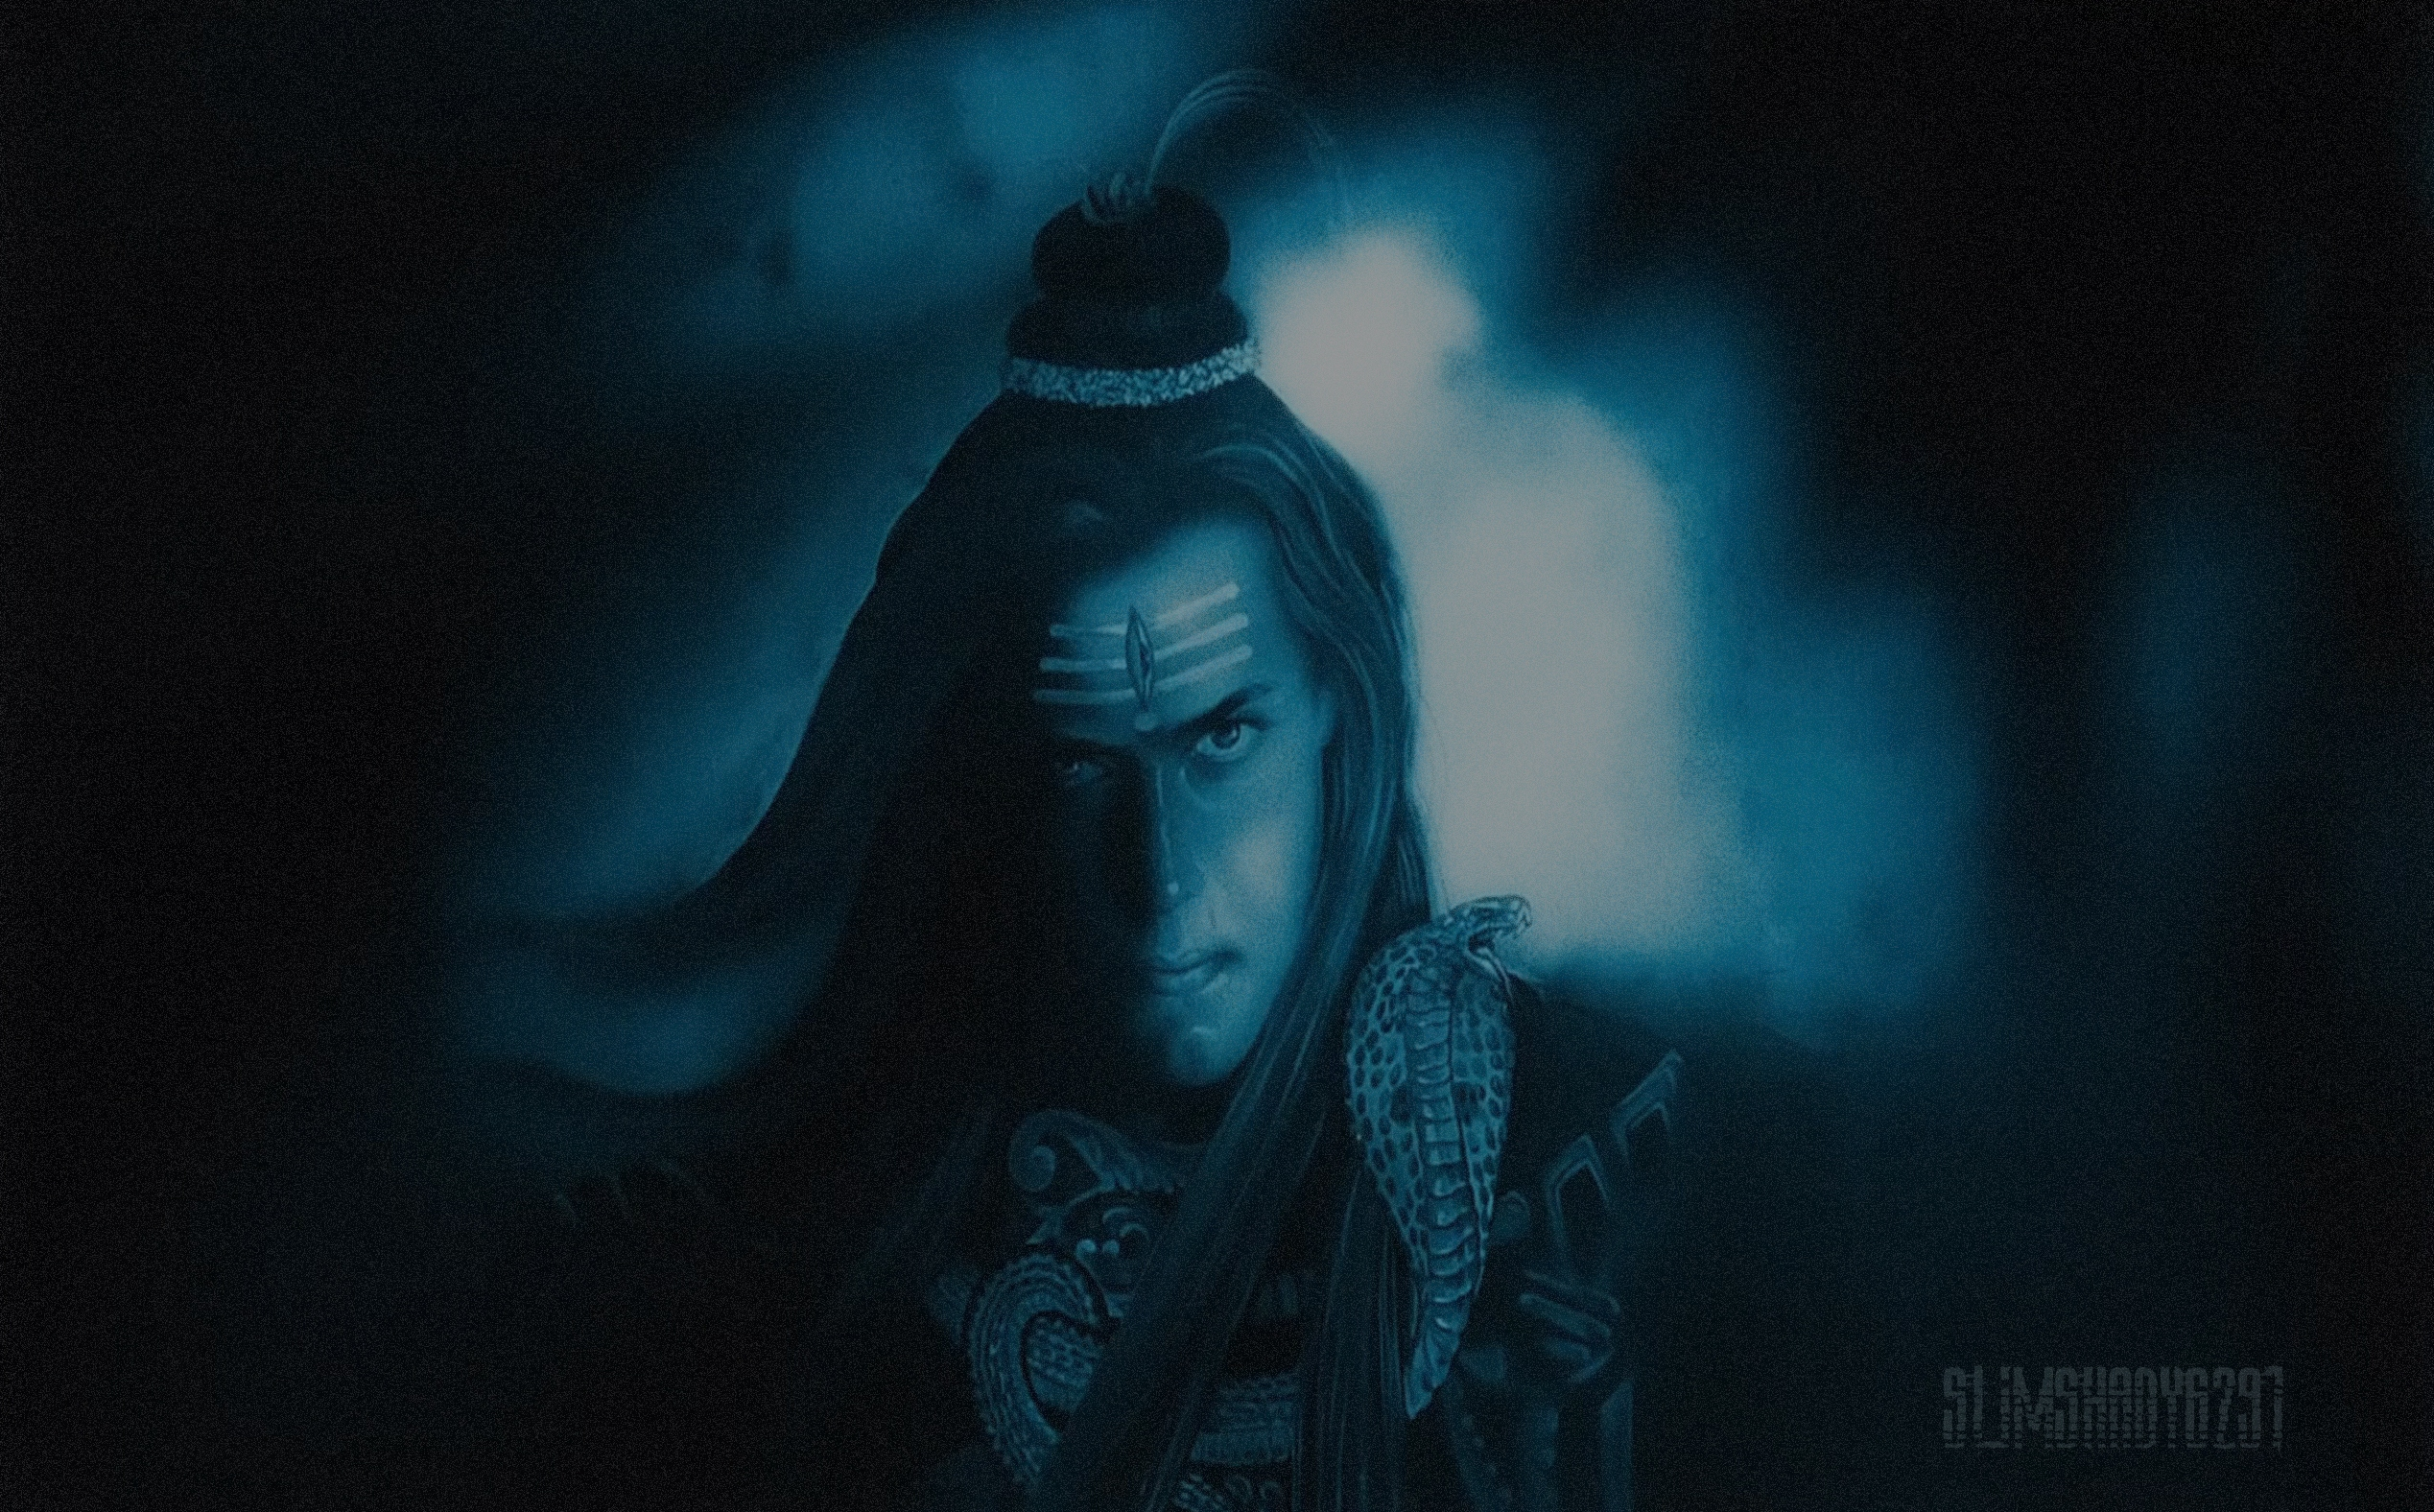 Download Wallpaper High Resolution Lord Shiva - 151252  Trends_51060.jpg